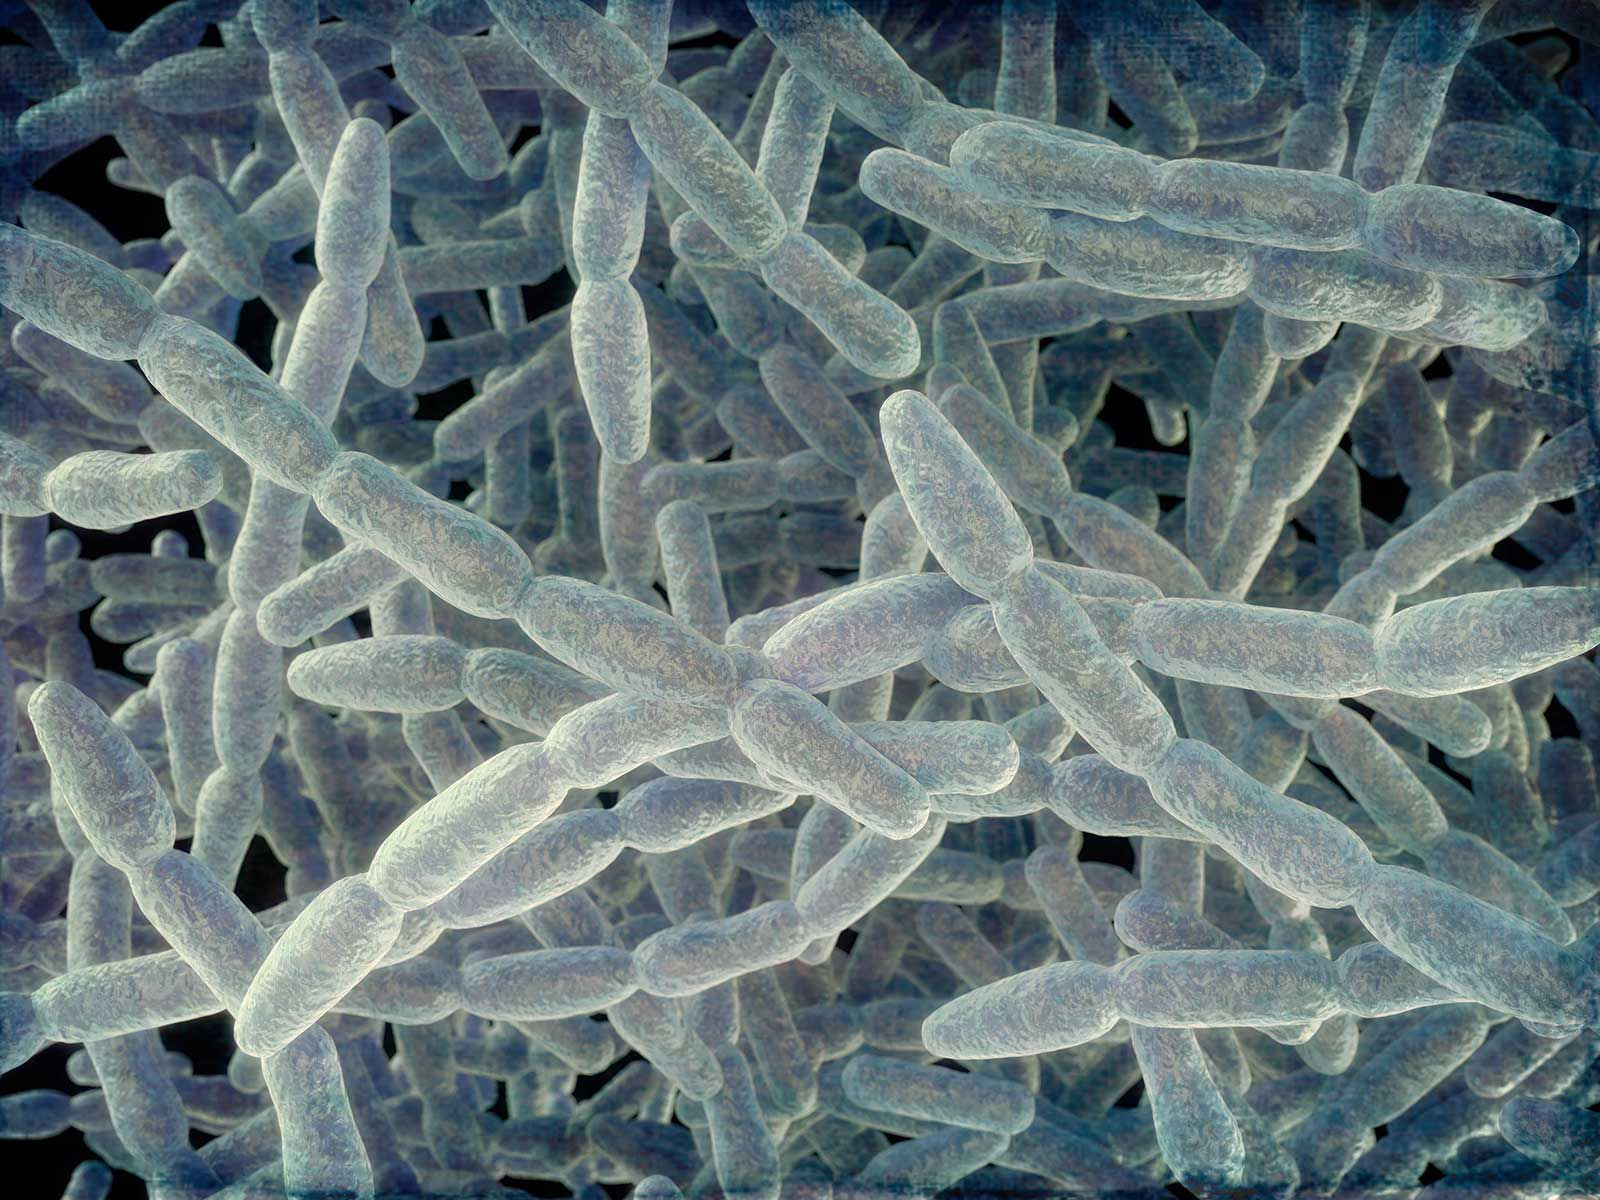 Why Reports of Legionnaires' Disease Are on the Rise in the United States